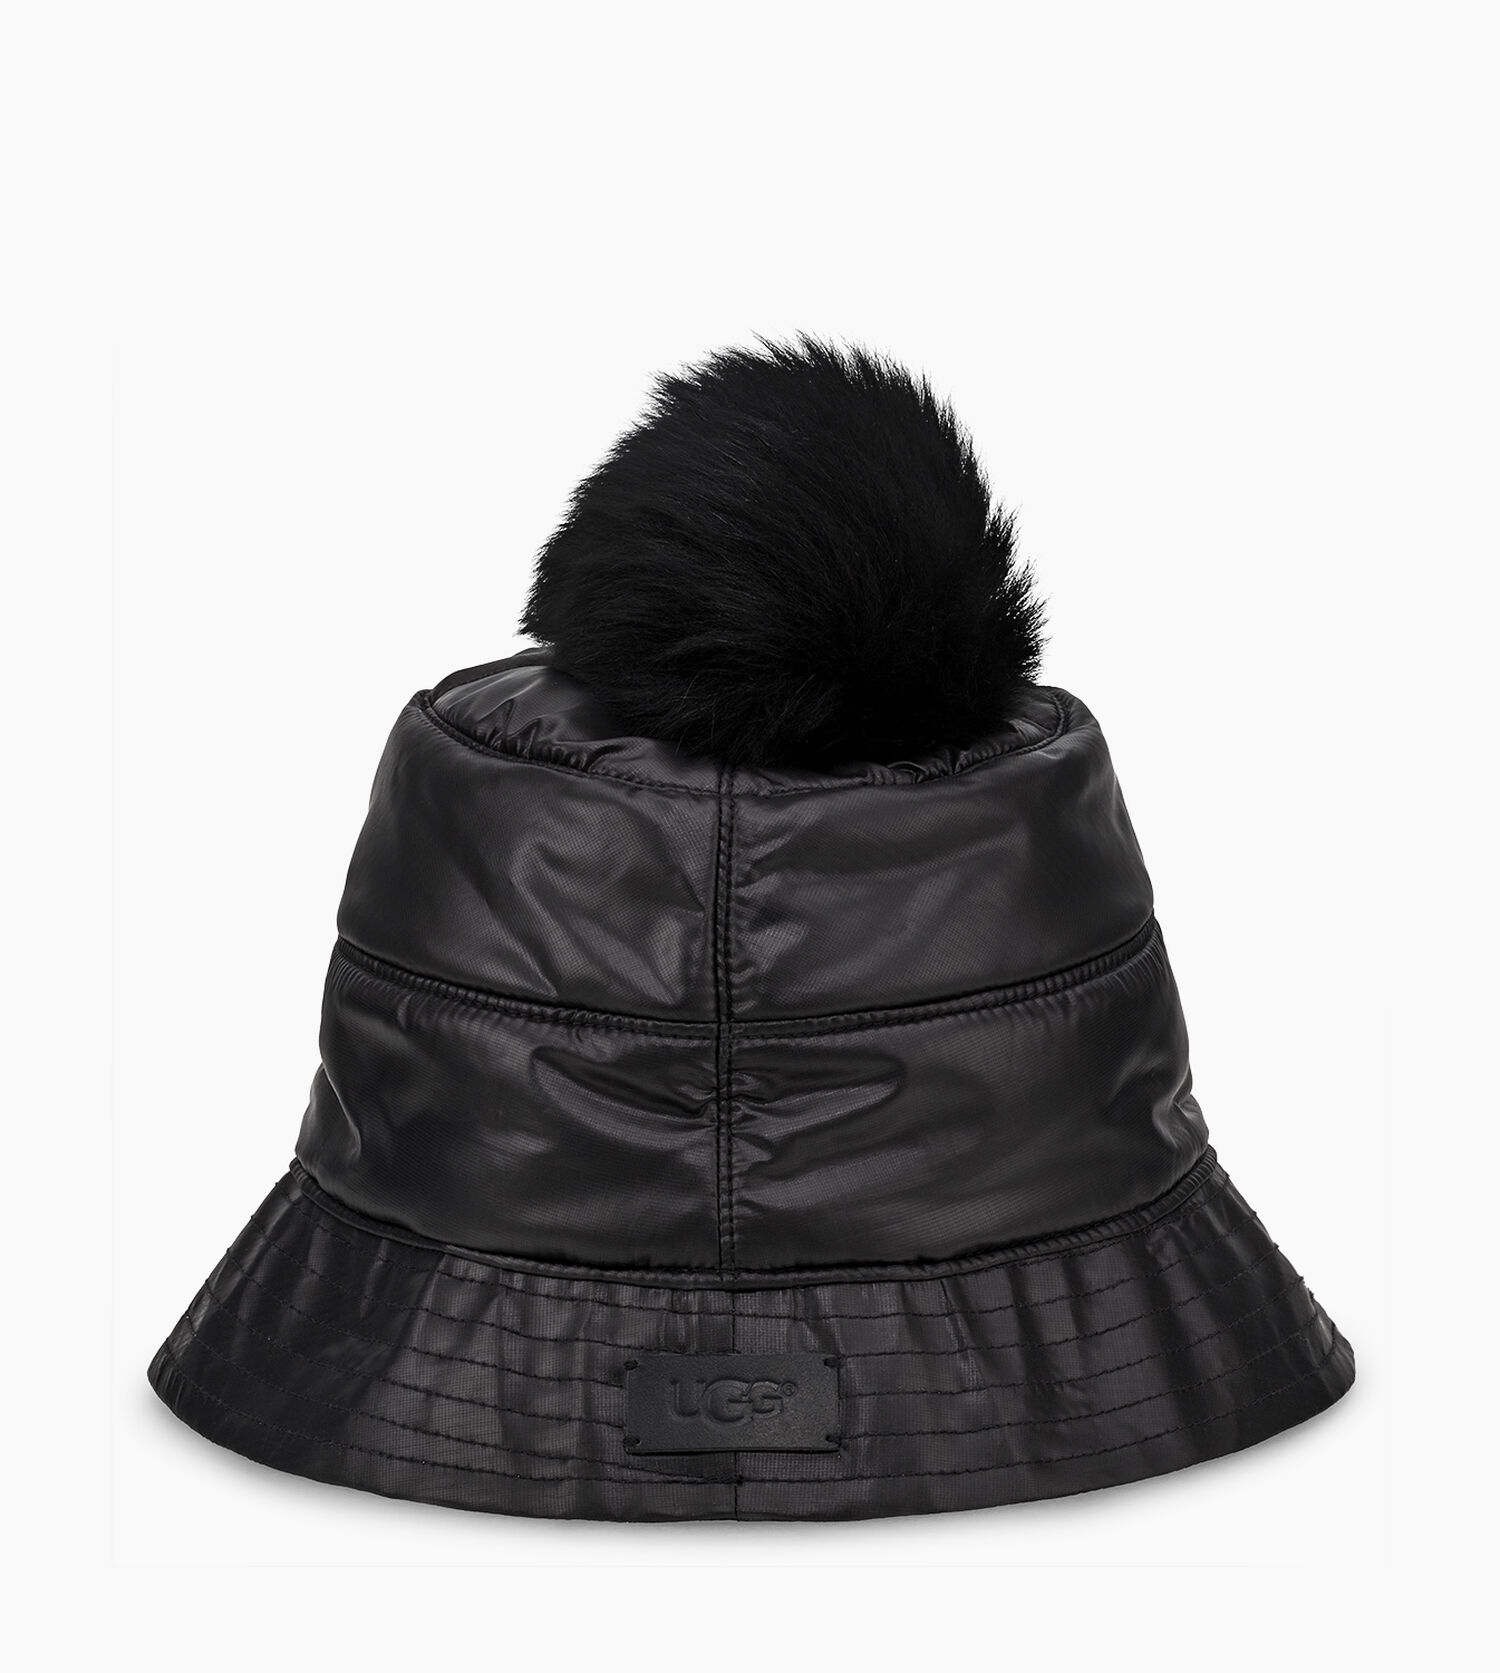 Zoom All Weather Bucket Hat W  Pom - Image 1 of 2 4fc01ab8b97